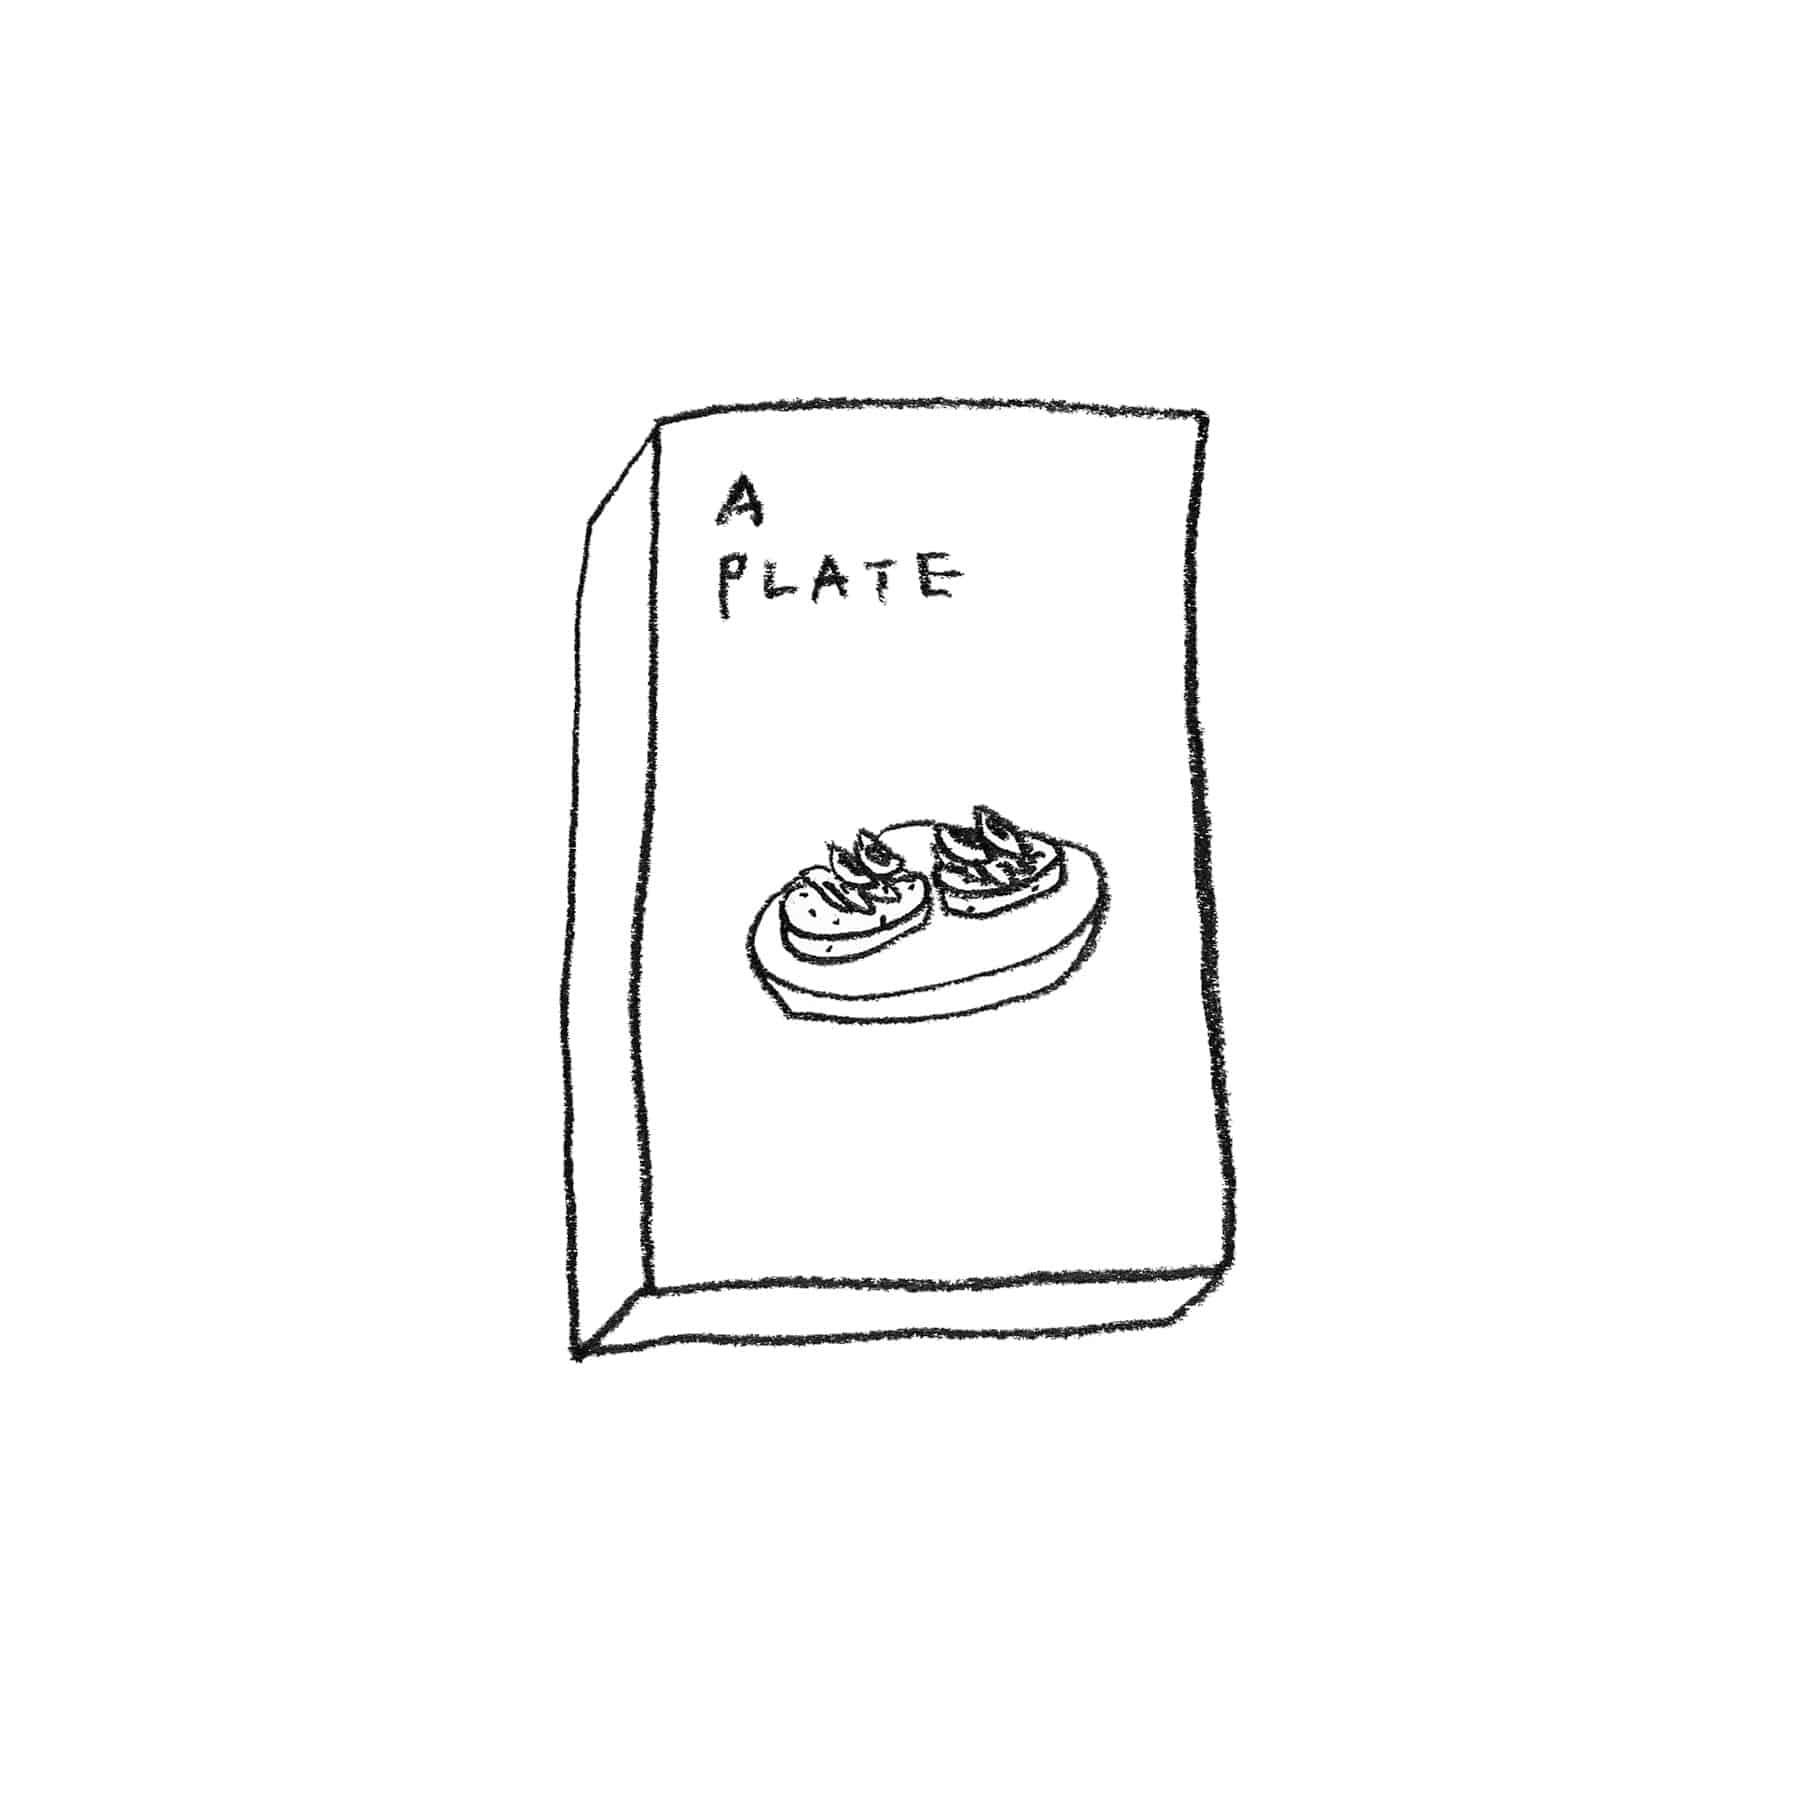 A PLATE #1